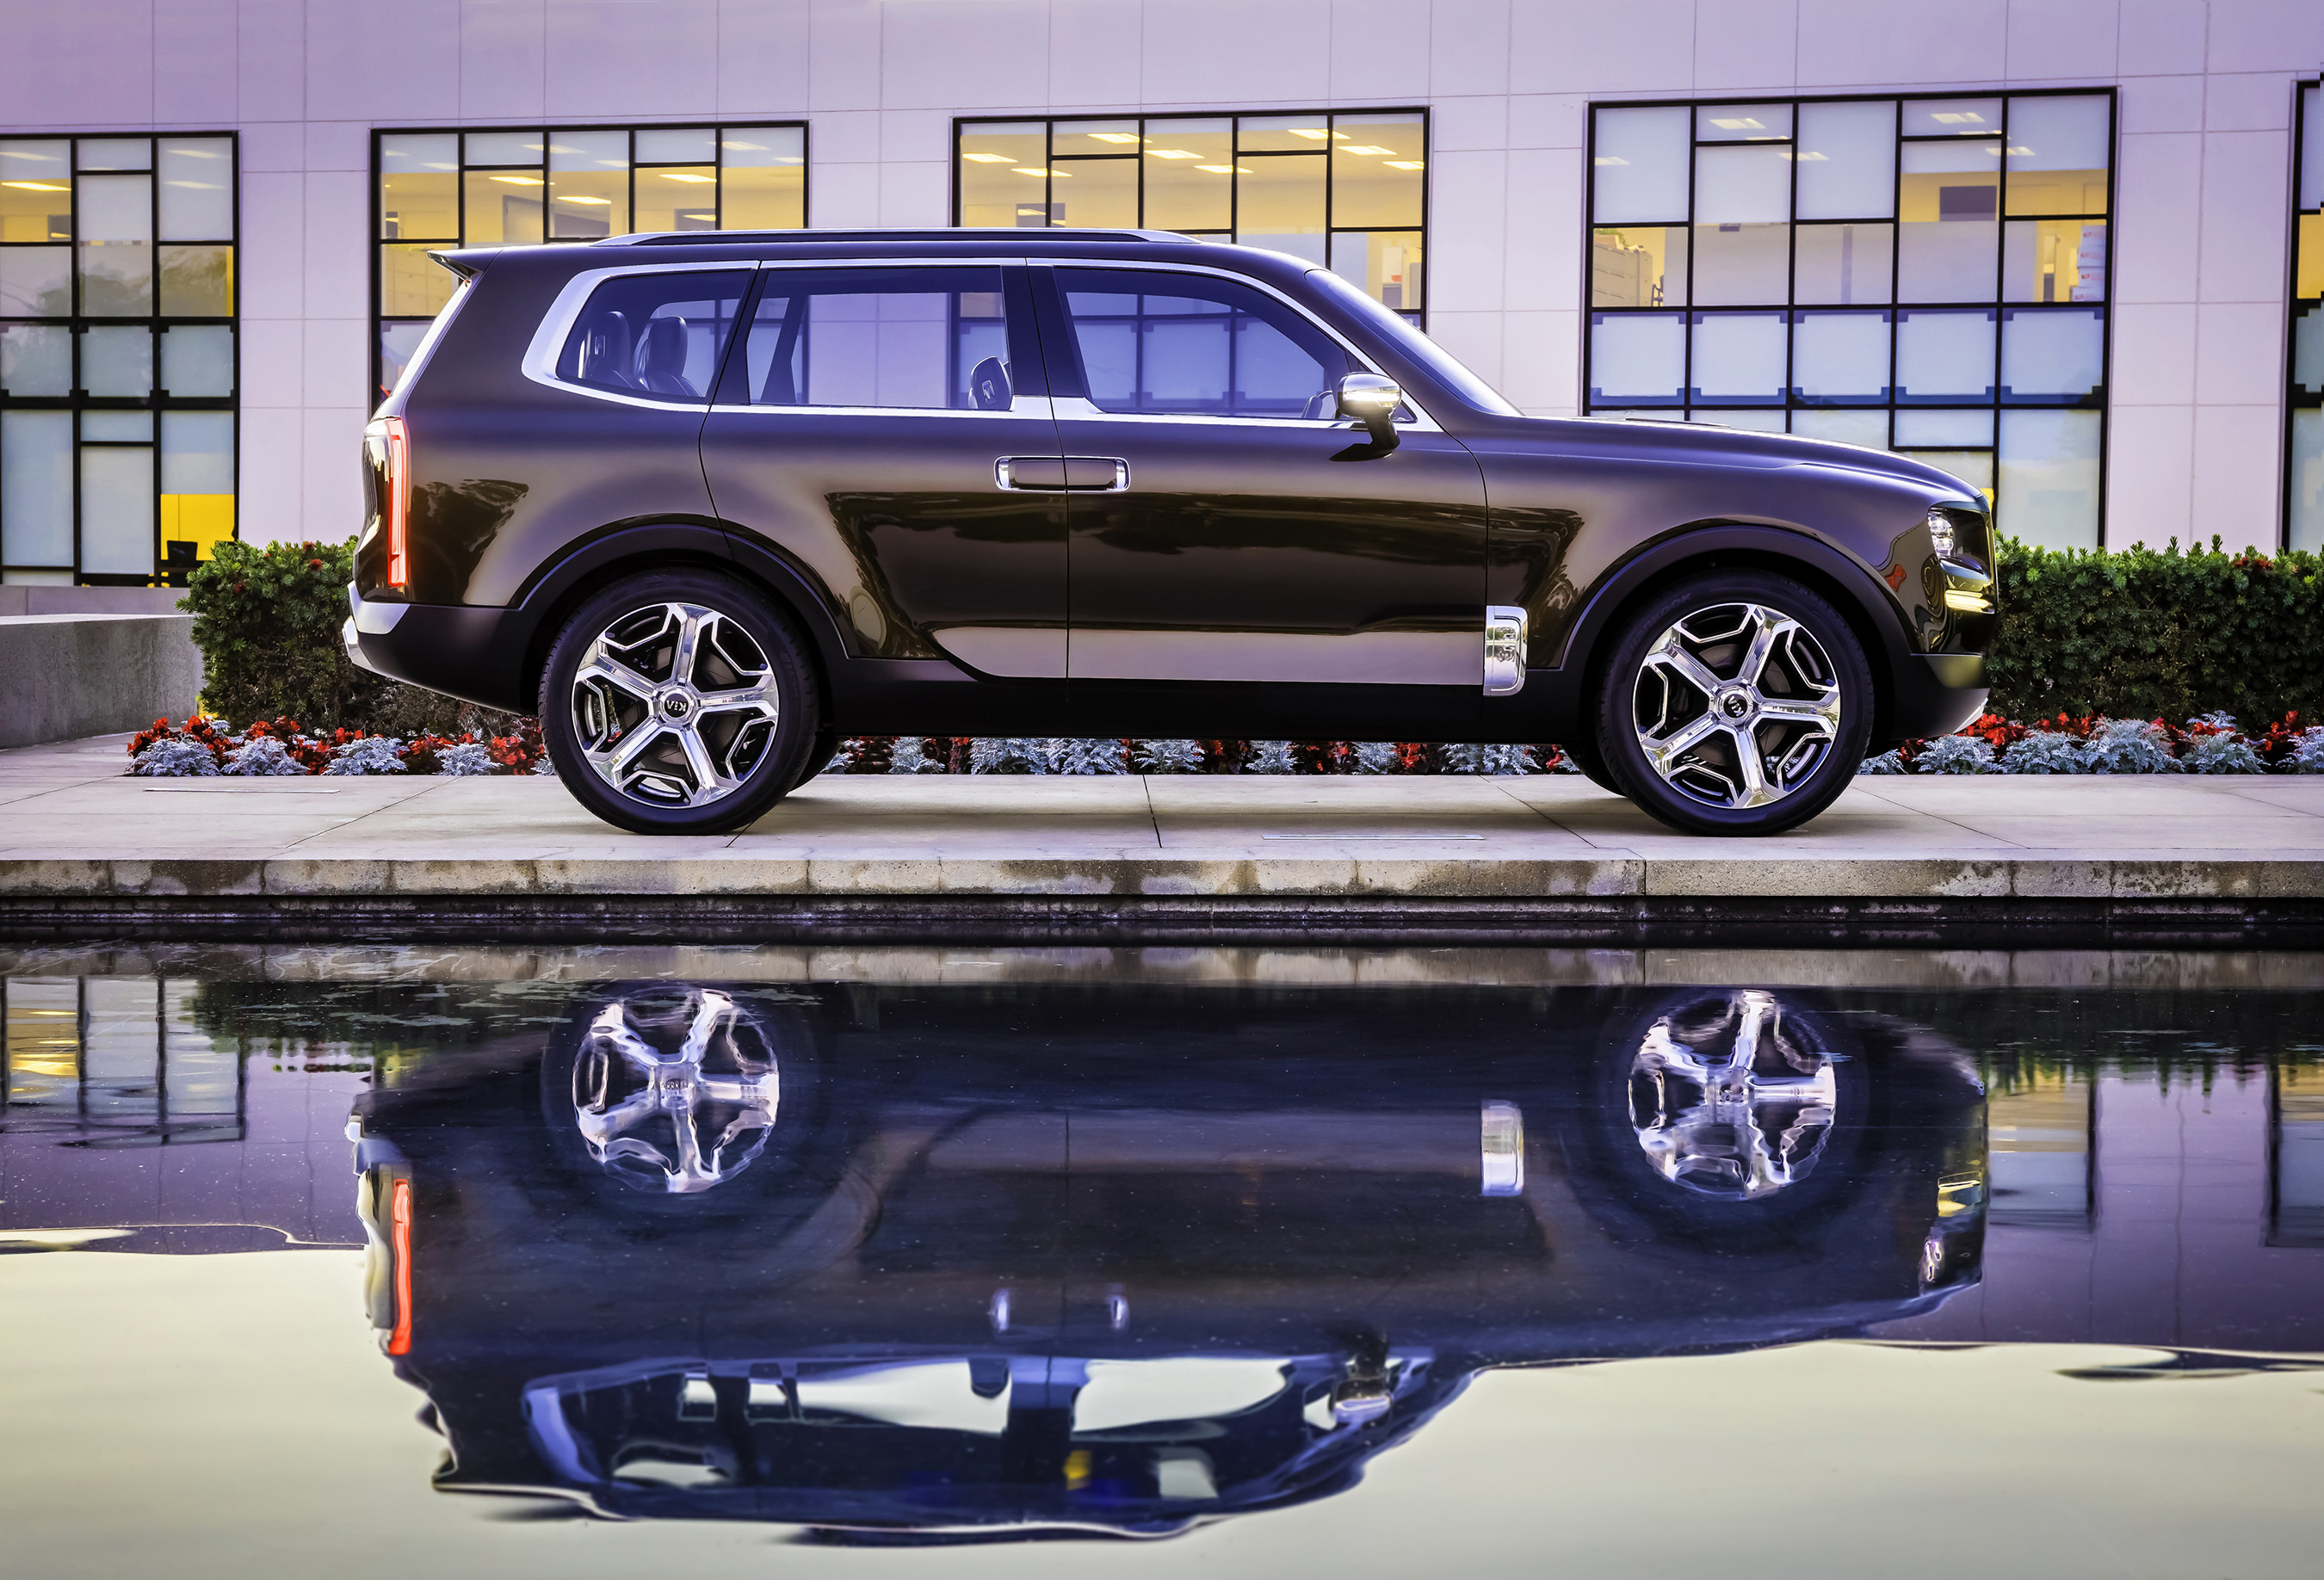 Kia unveils the Telluride, a cutting-edge vision for a full-size luxury SUV.